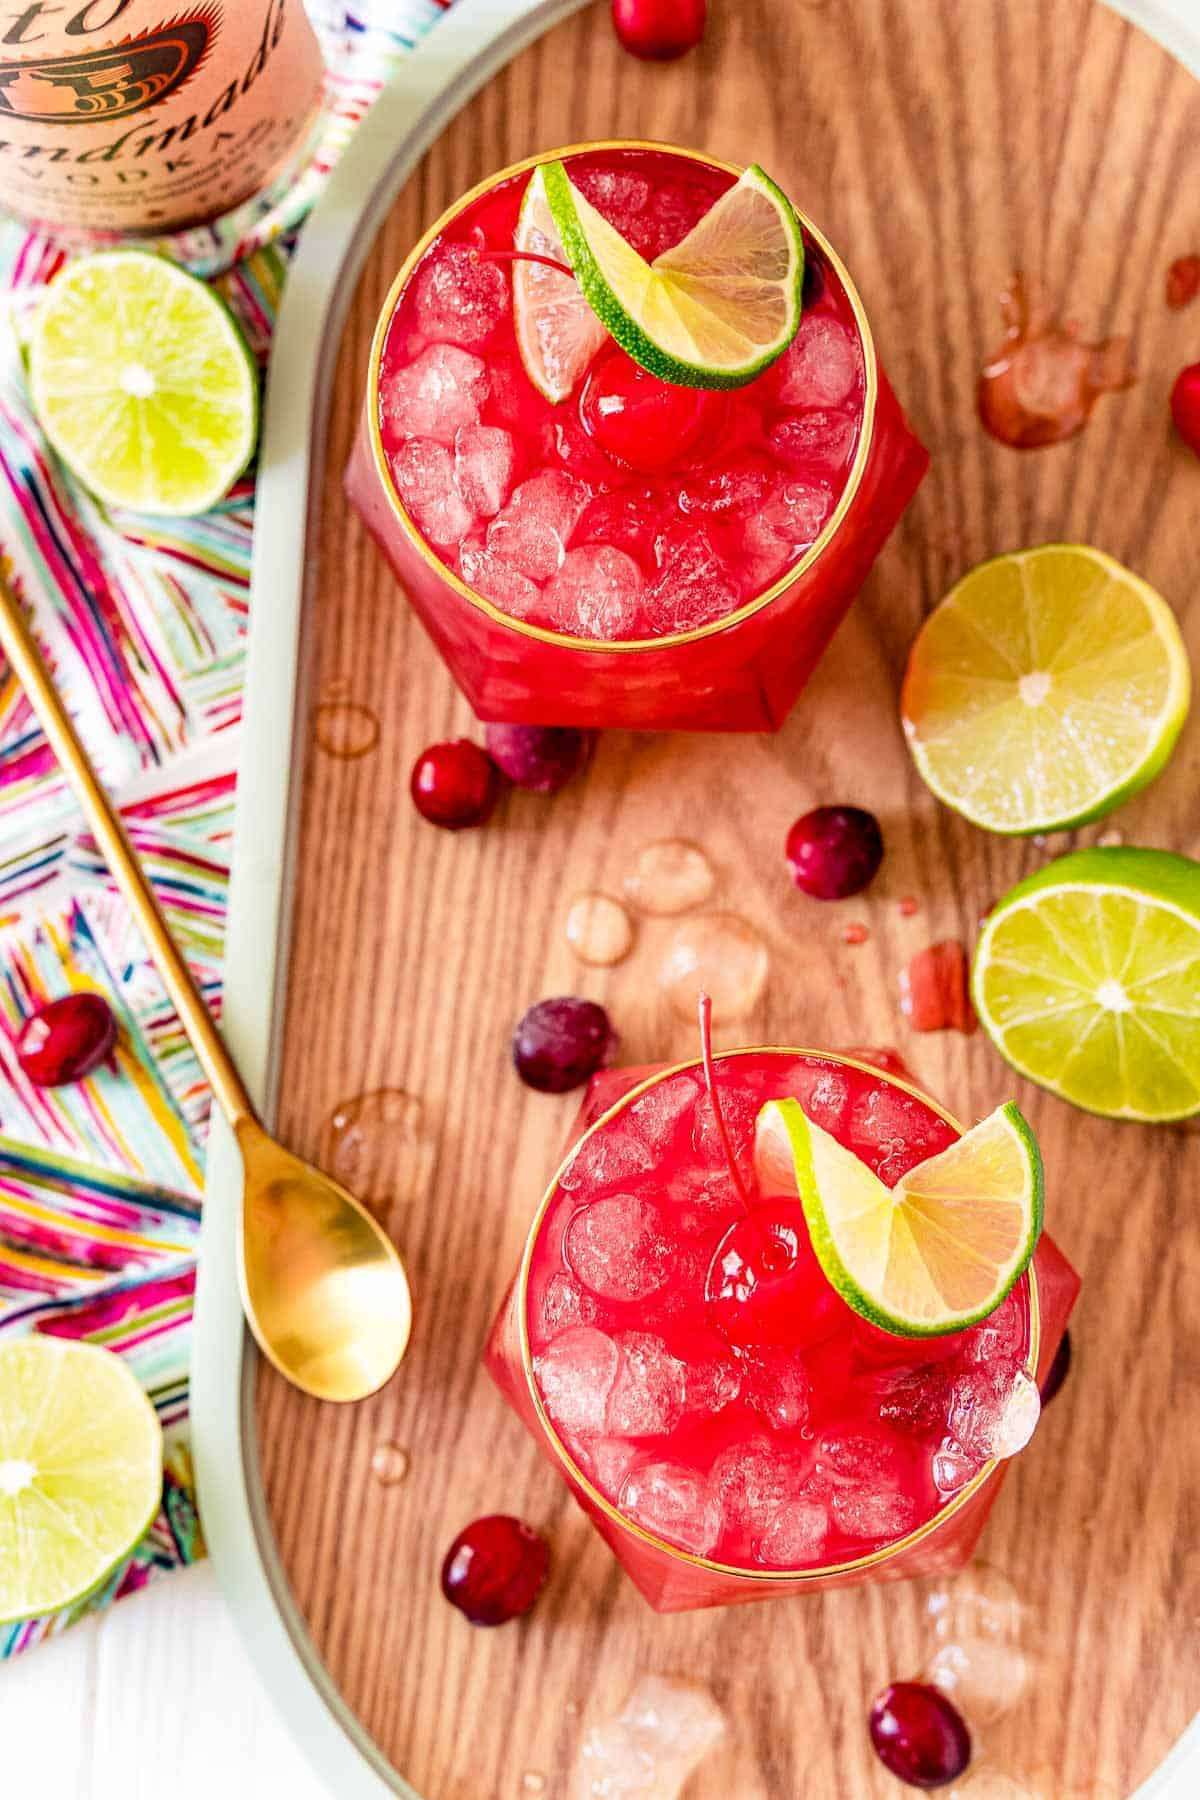 Overhead view of two bright red cocktails served on ice.